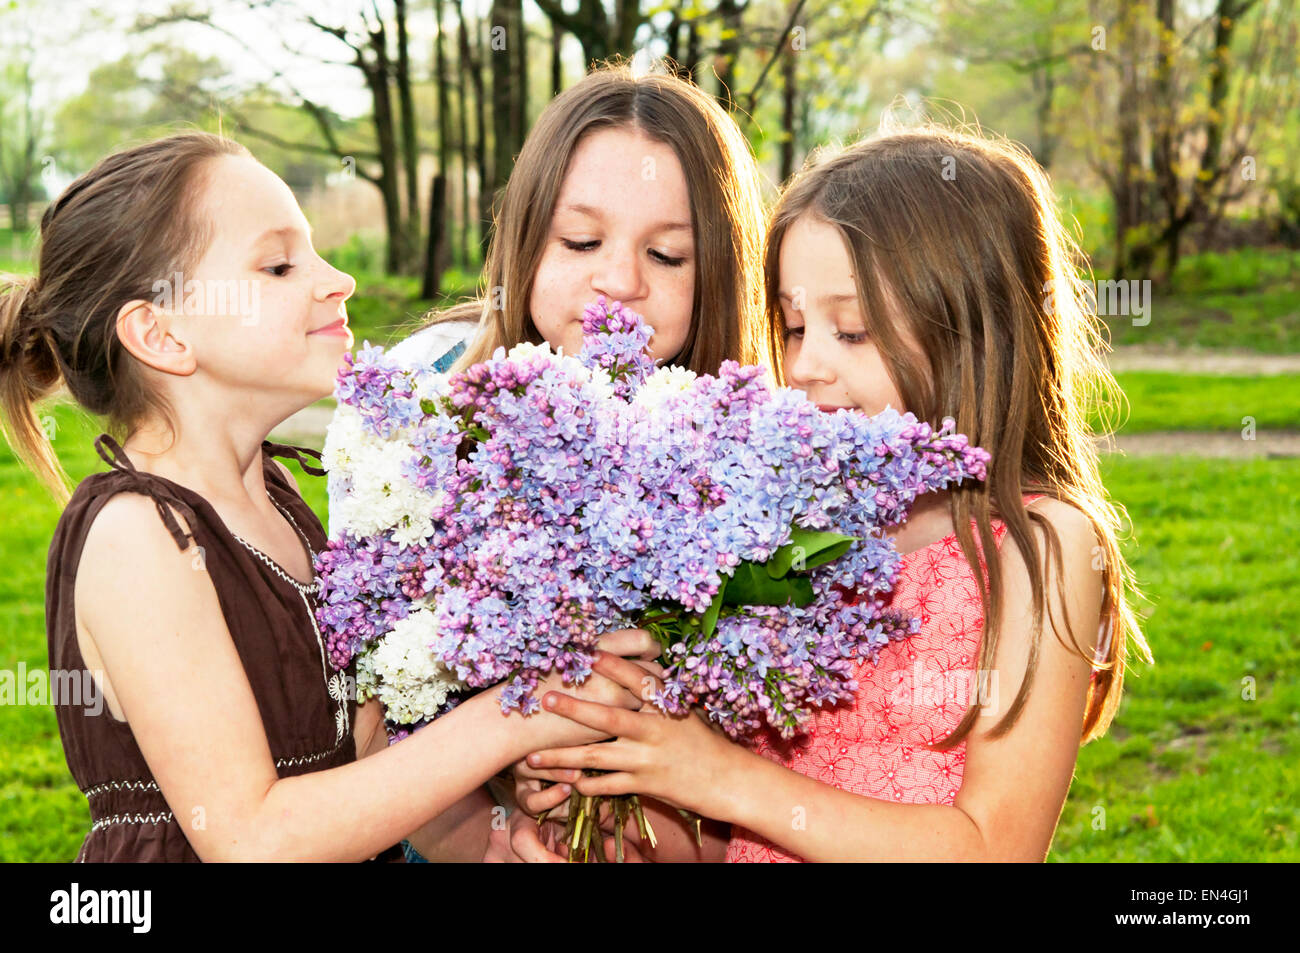 Three girls smelling Lilac bouquet together - Stock Image